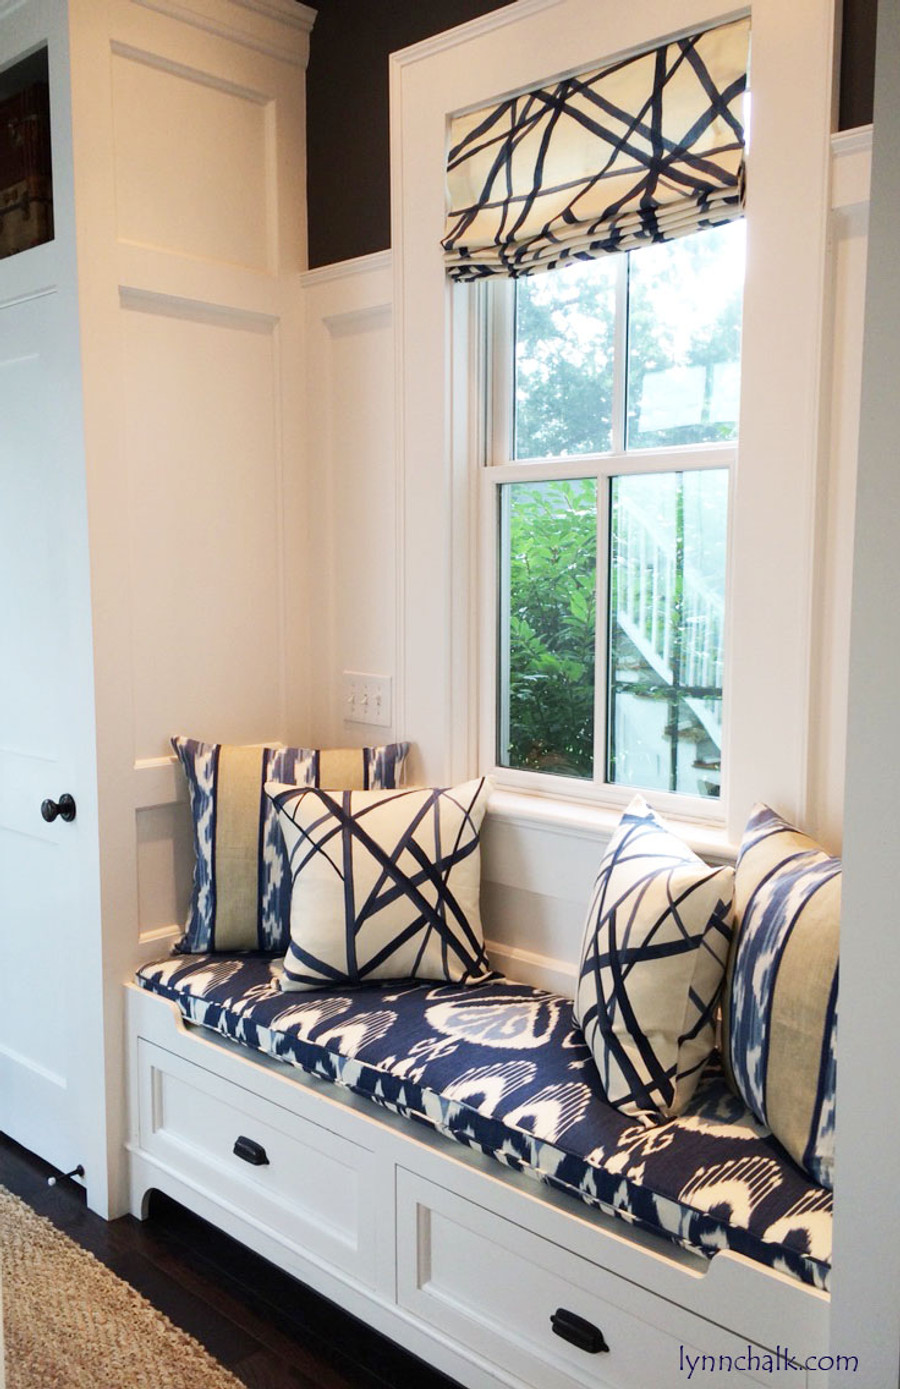 Custom Roman Shade and Pillows in Kelly Wearstler Channels in Periwinkle.  Cushion is in Bansuri in Iris and back pillows are in Ranjani from Kravet.